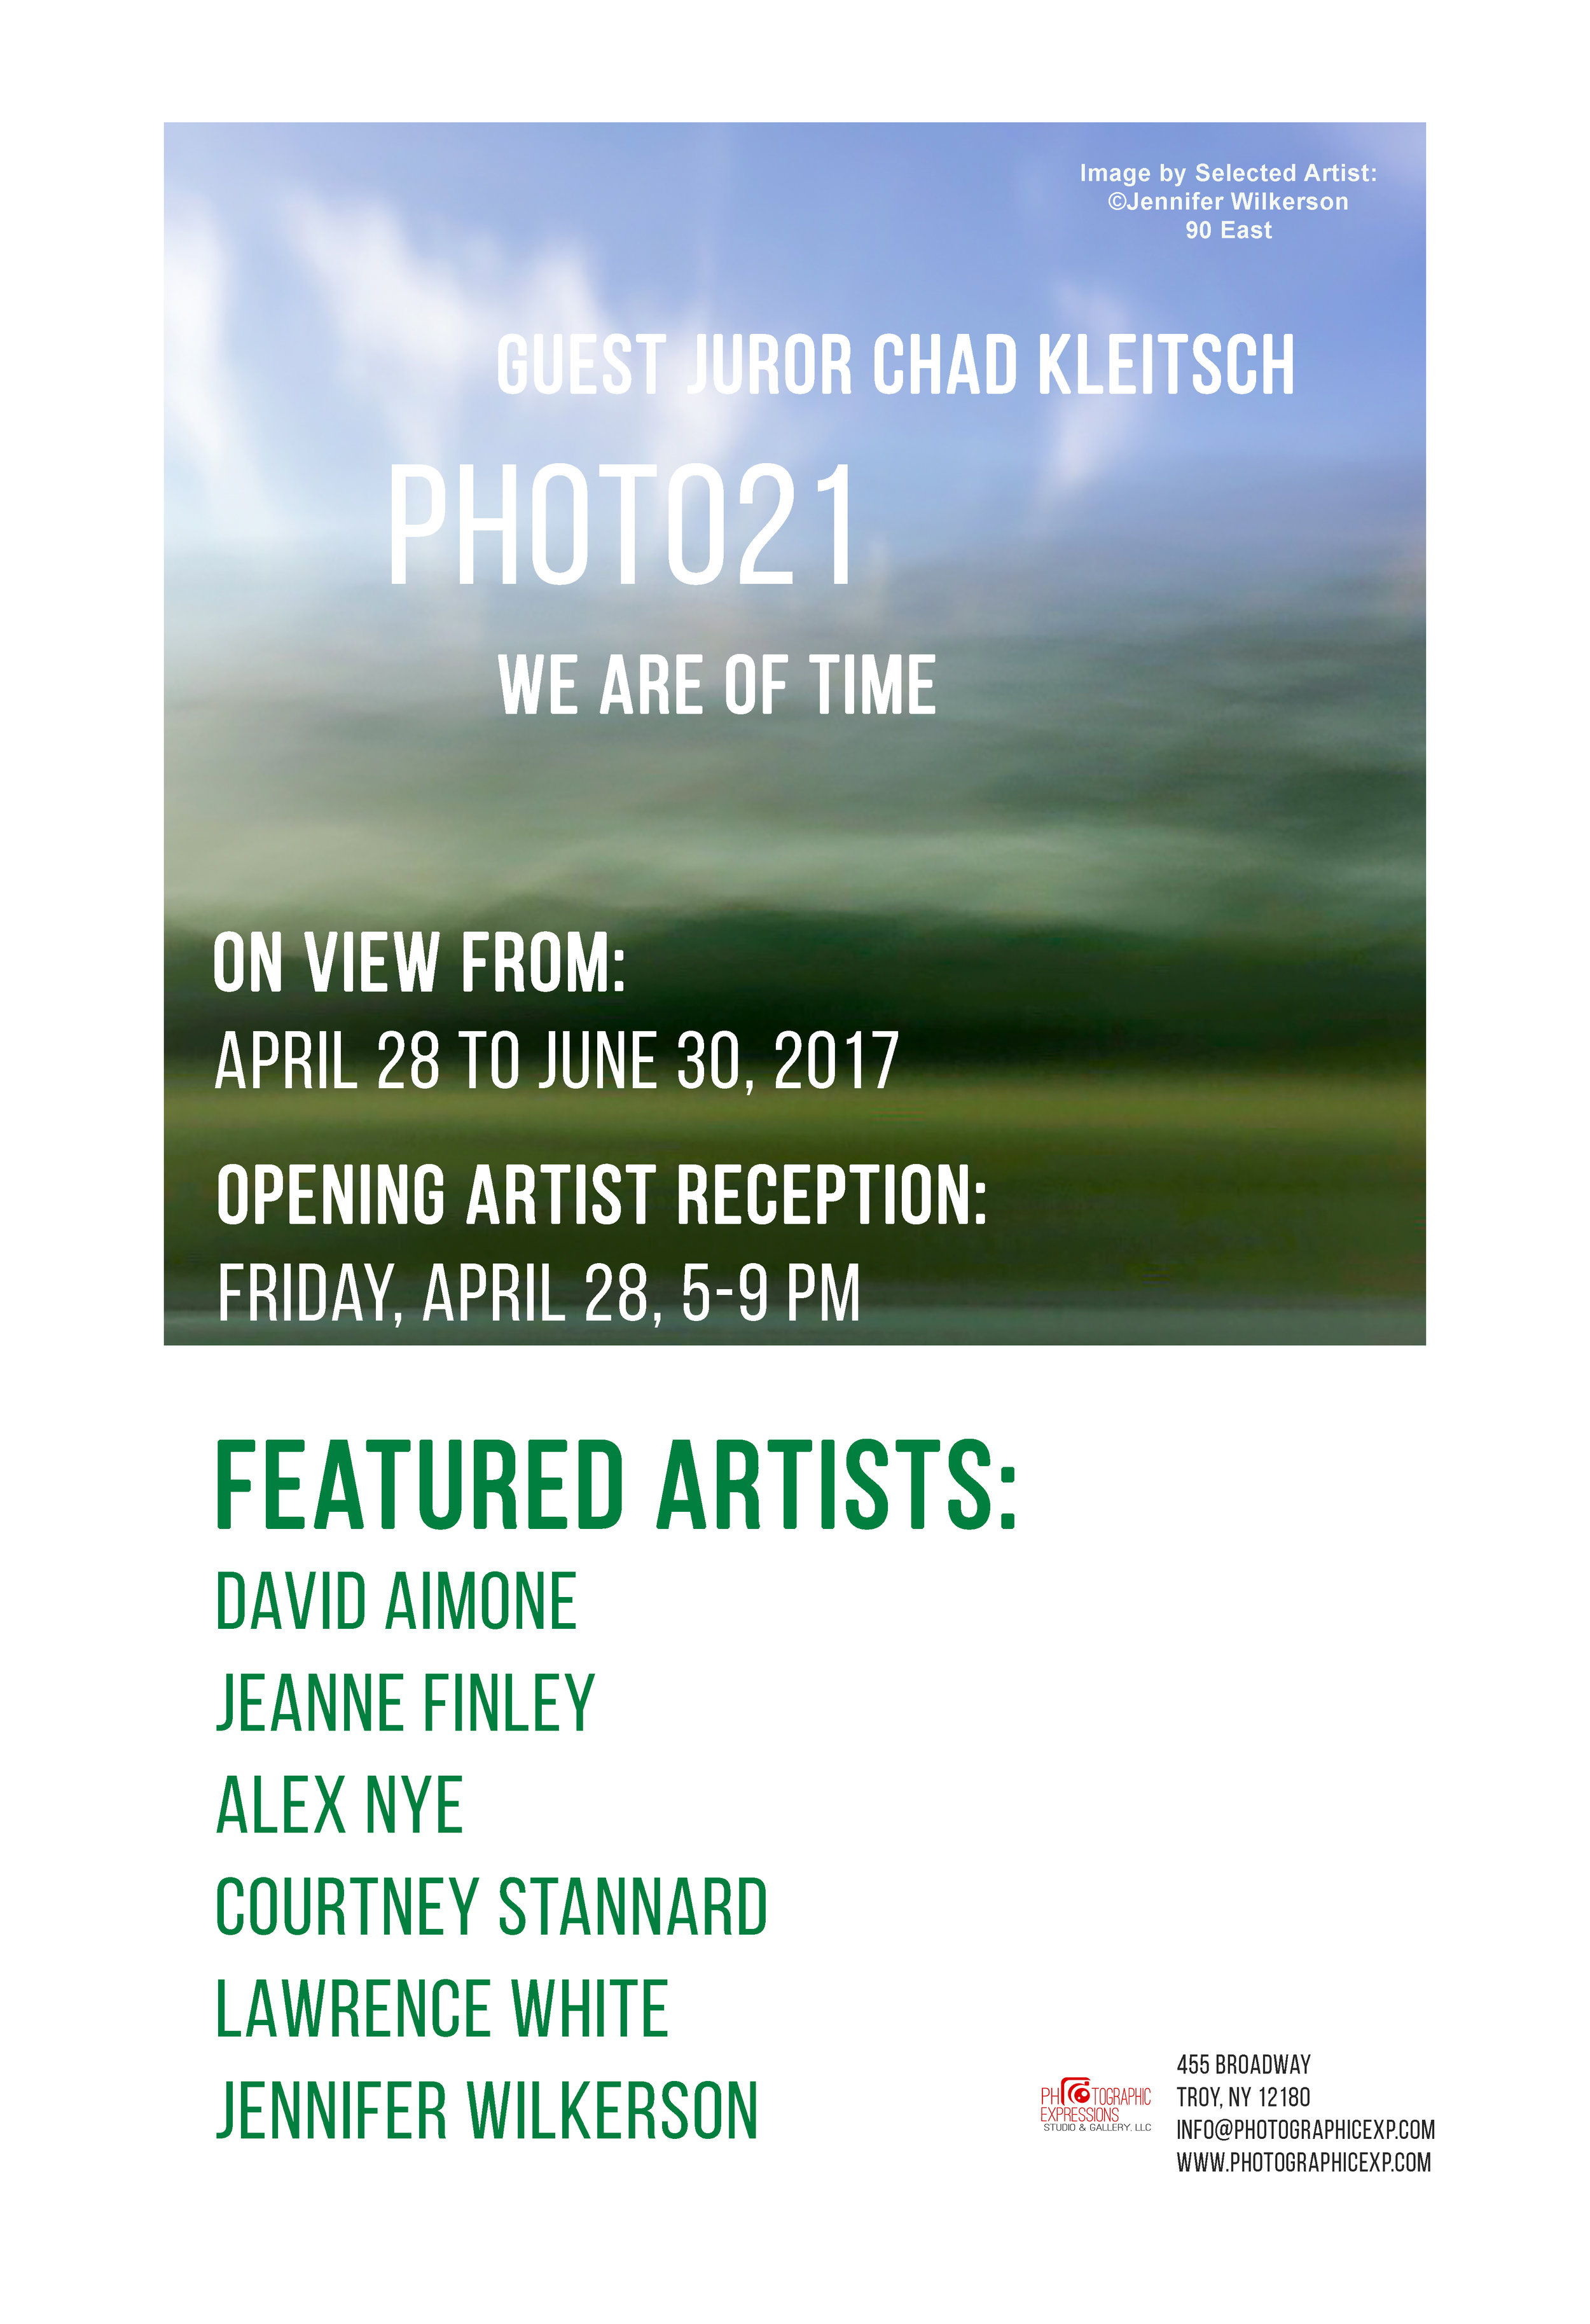 GROUP EXHIBITION: PHOTO21: WE ARE OF TIME